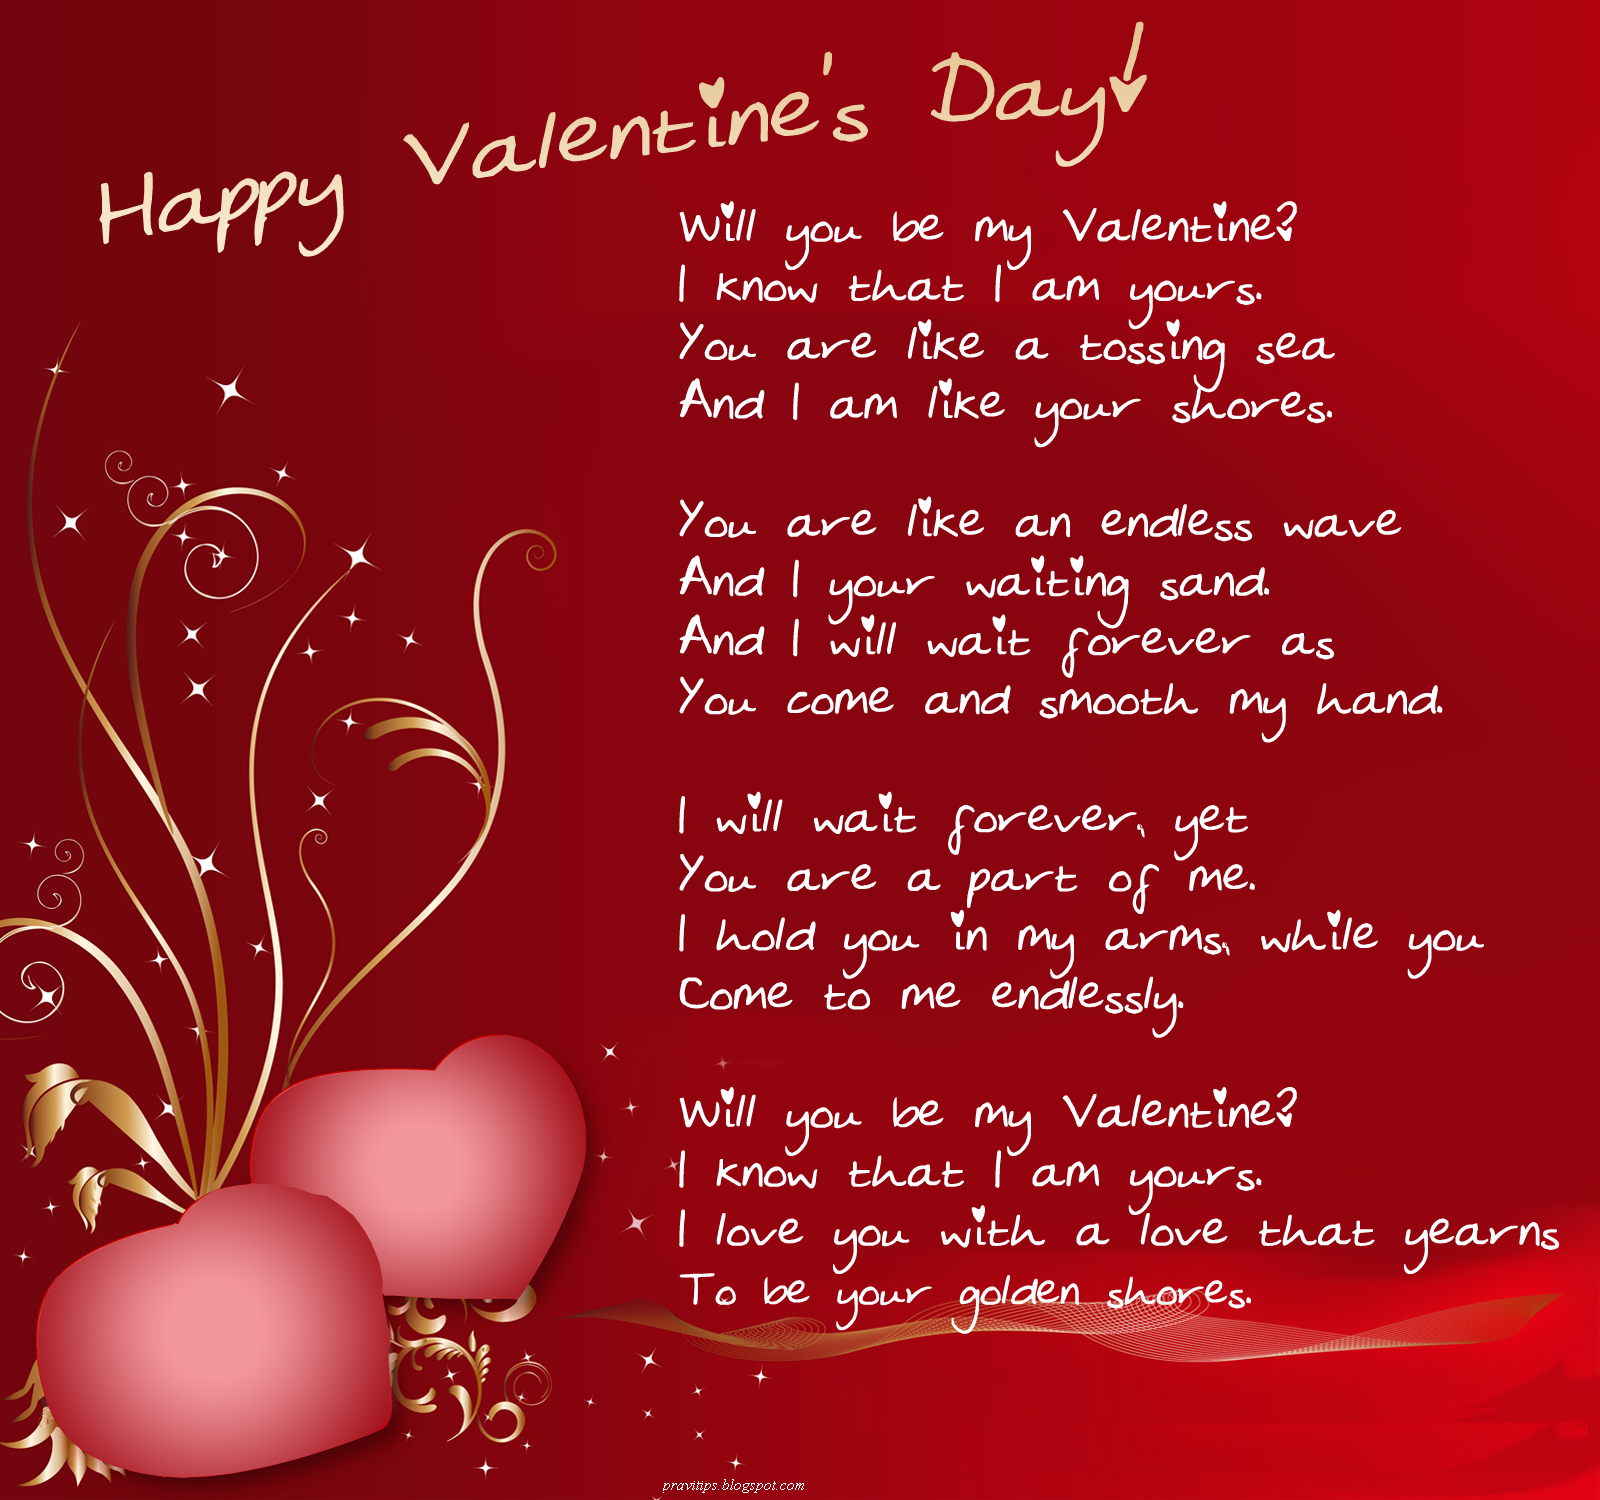 happy valentines day sms wishes - Valentines Day Text Messages For Him